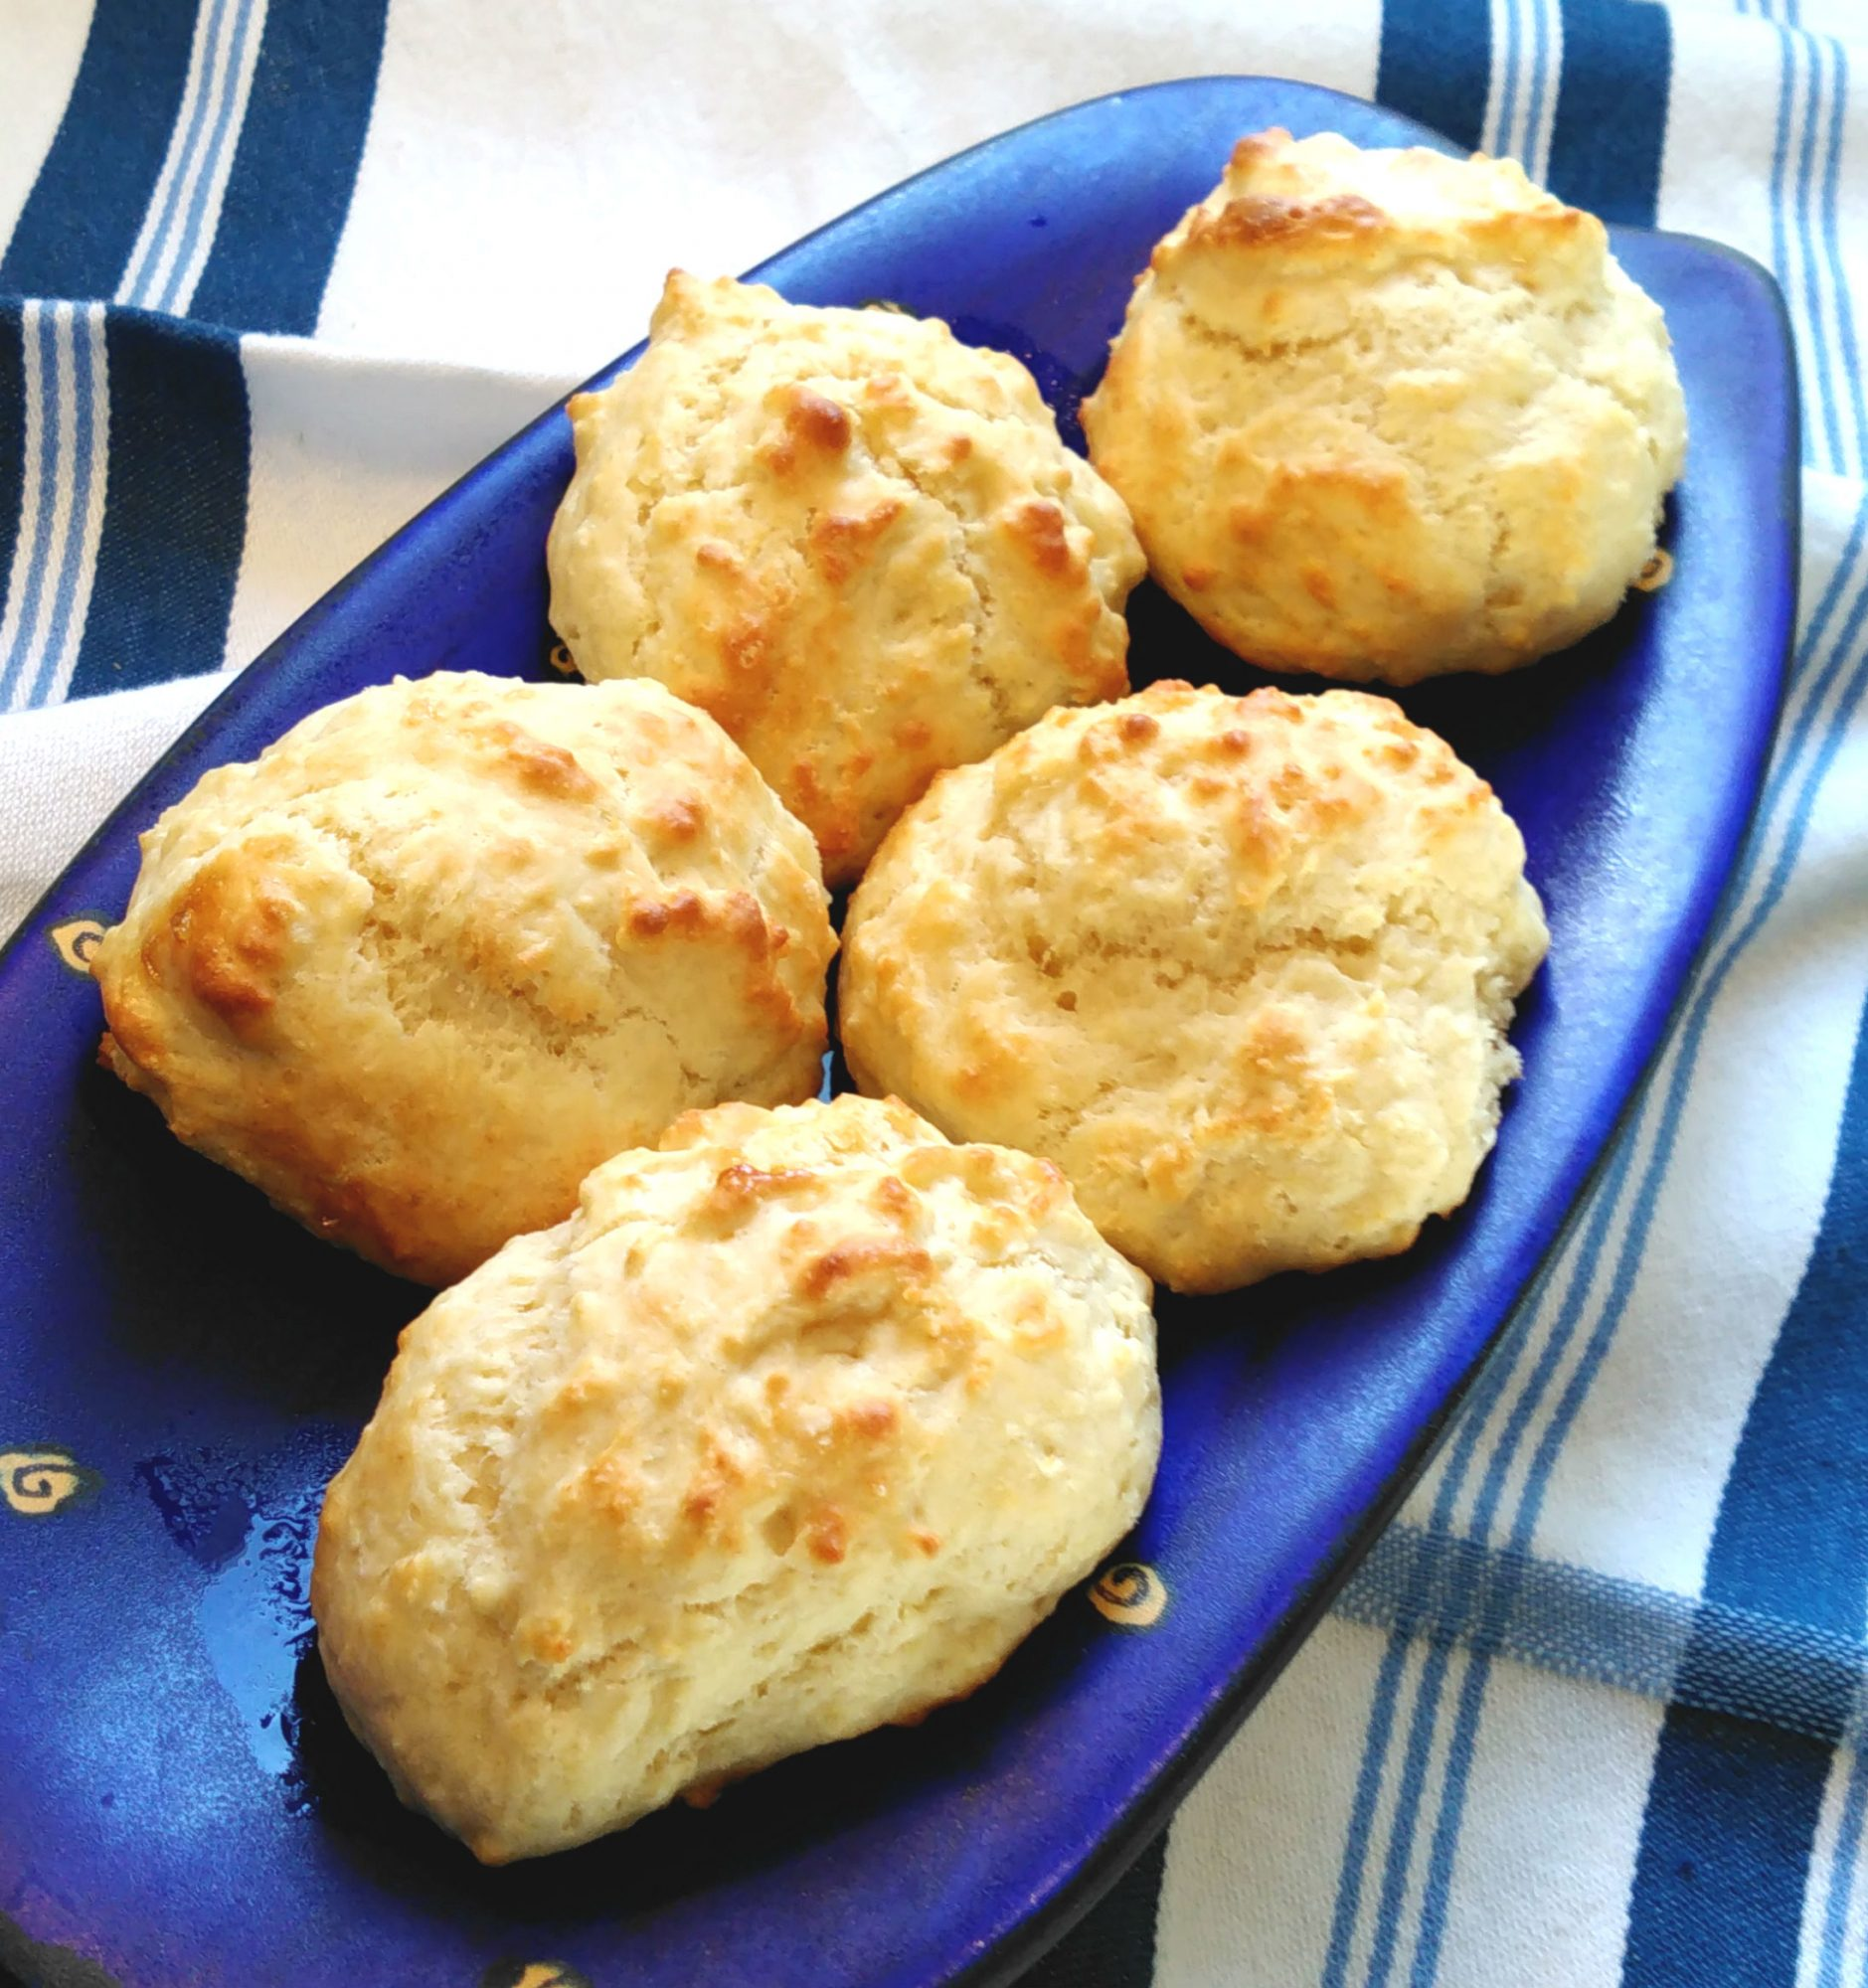 homemade drop biscuits on a blue plate